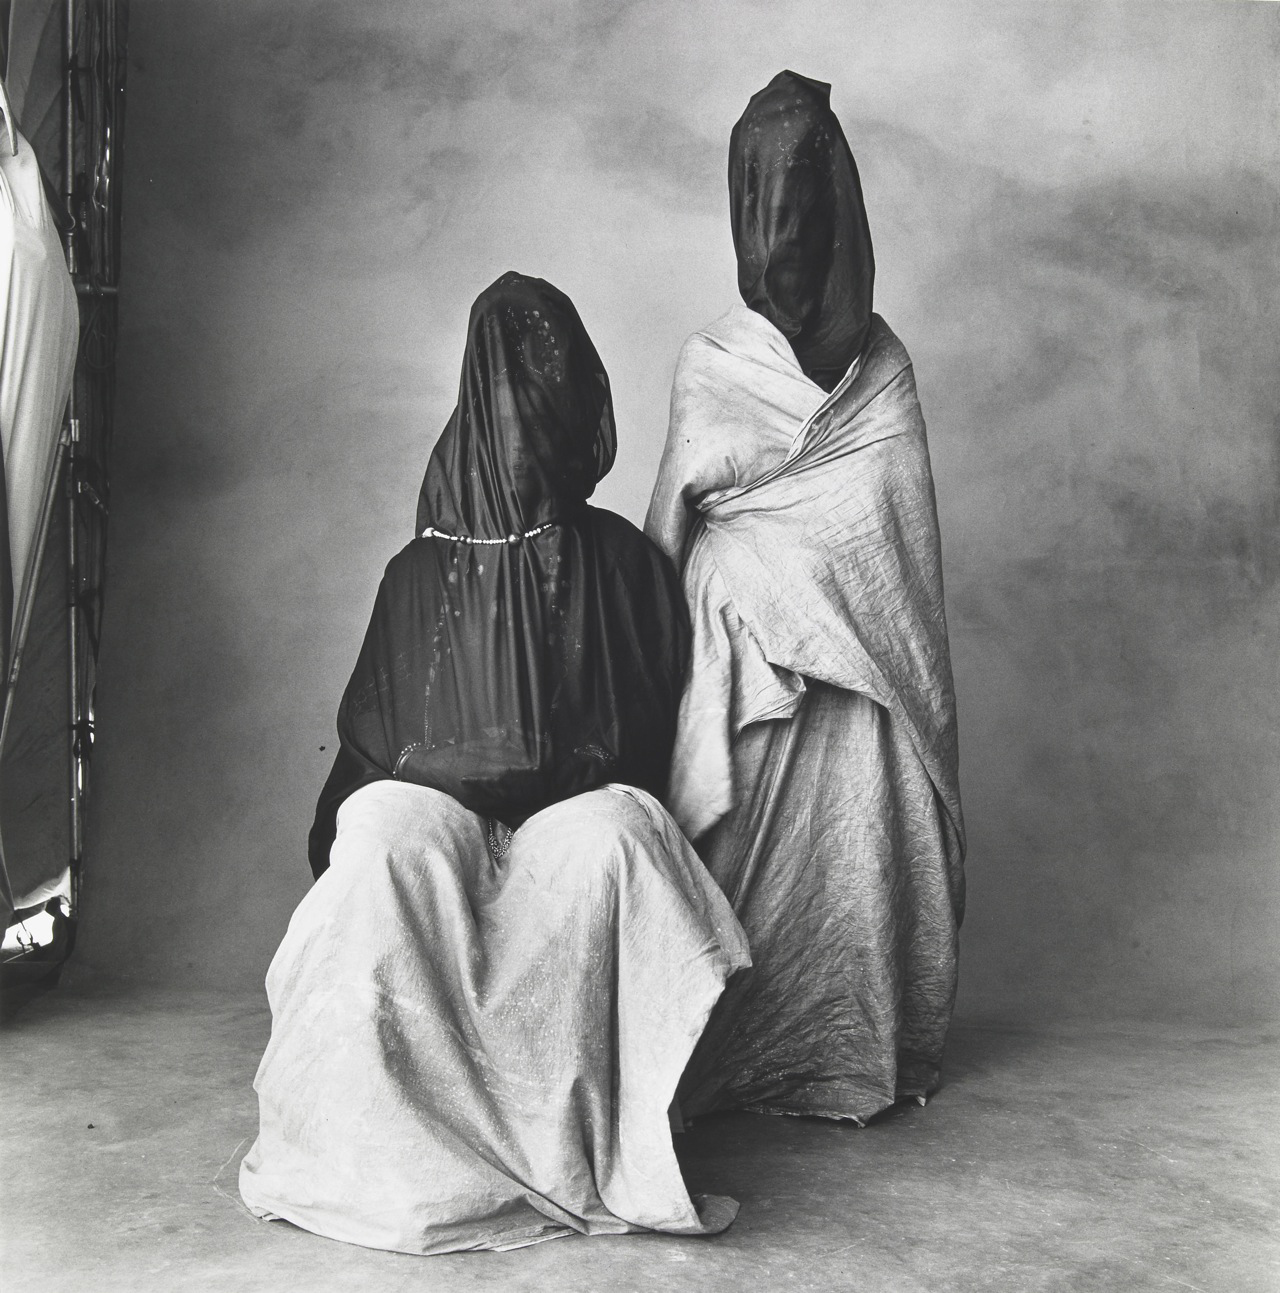 the life and fashion photography of the american photographer irving penn Photographer irving penn (american, 1917–2009) is celebrated for his compelling portraits, scenes, and still lifes, in genres ranging from fashion to travel photography.